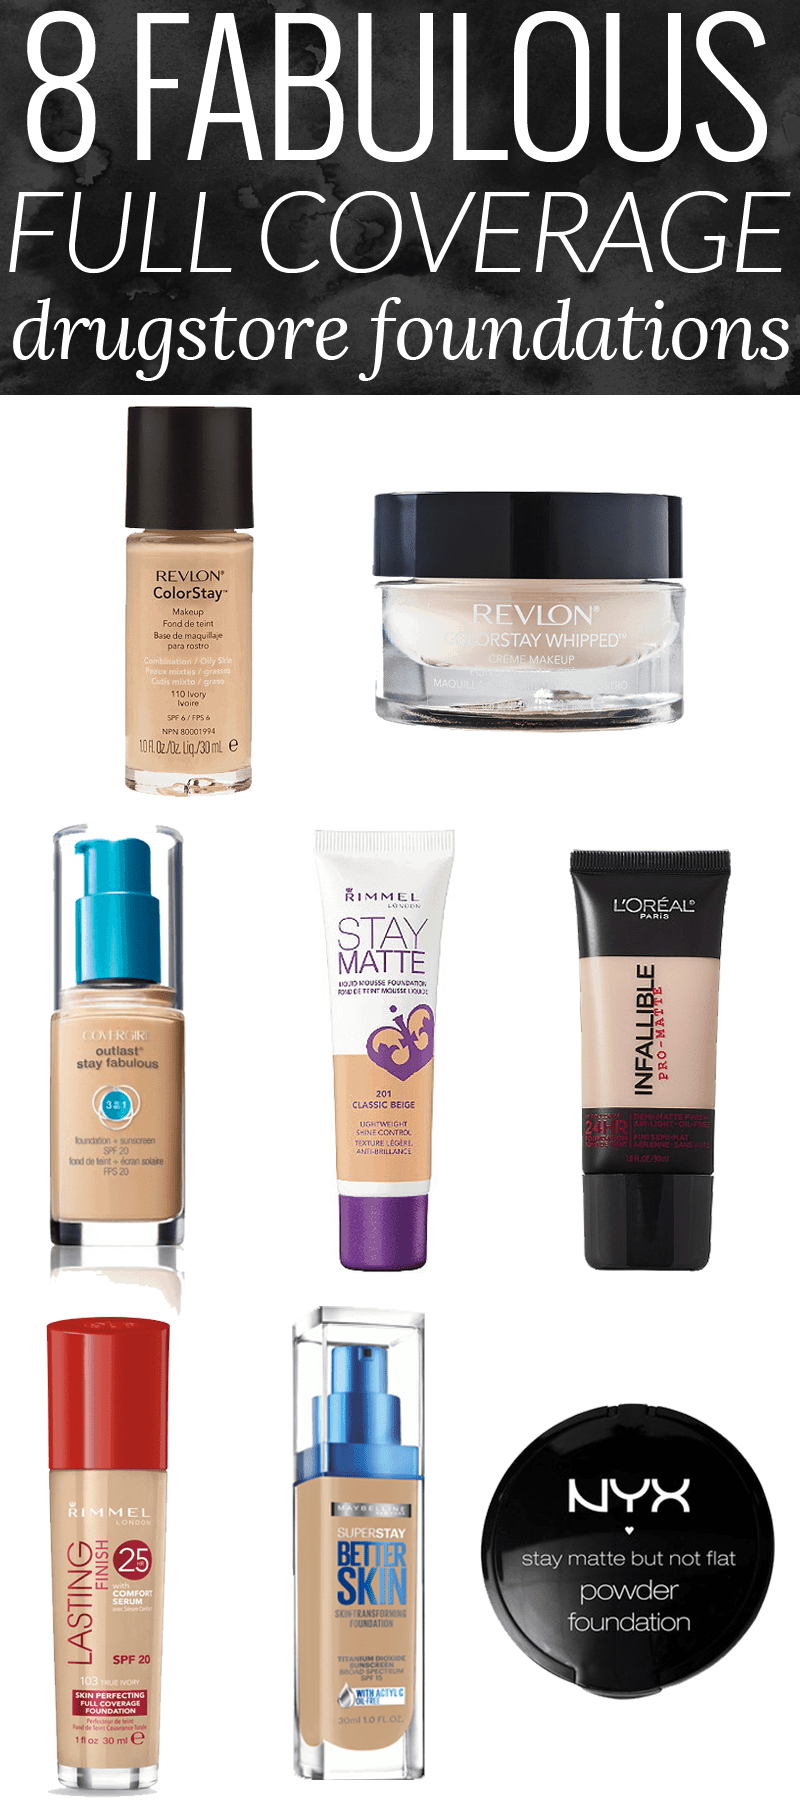 8 Fabulous Full Coverage Drugstore Foundation - The Best Drugstore Foundation by beauty blogger Meg O